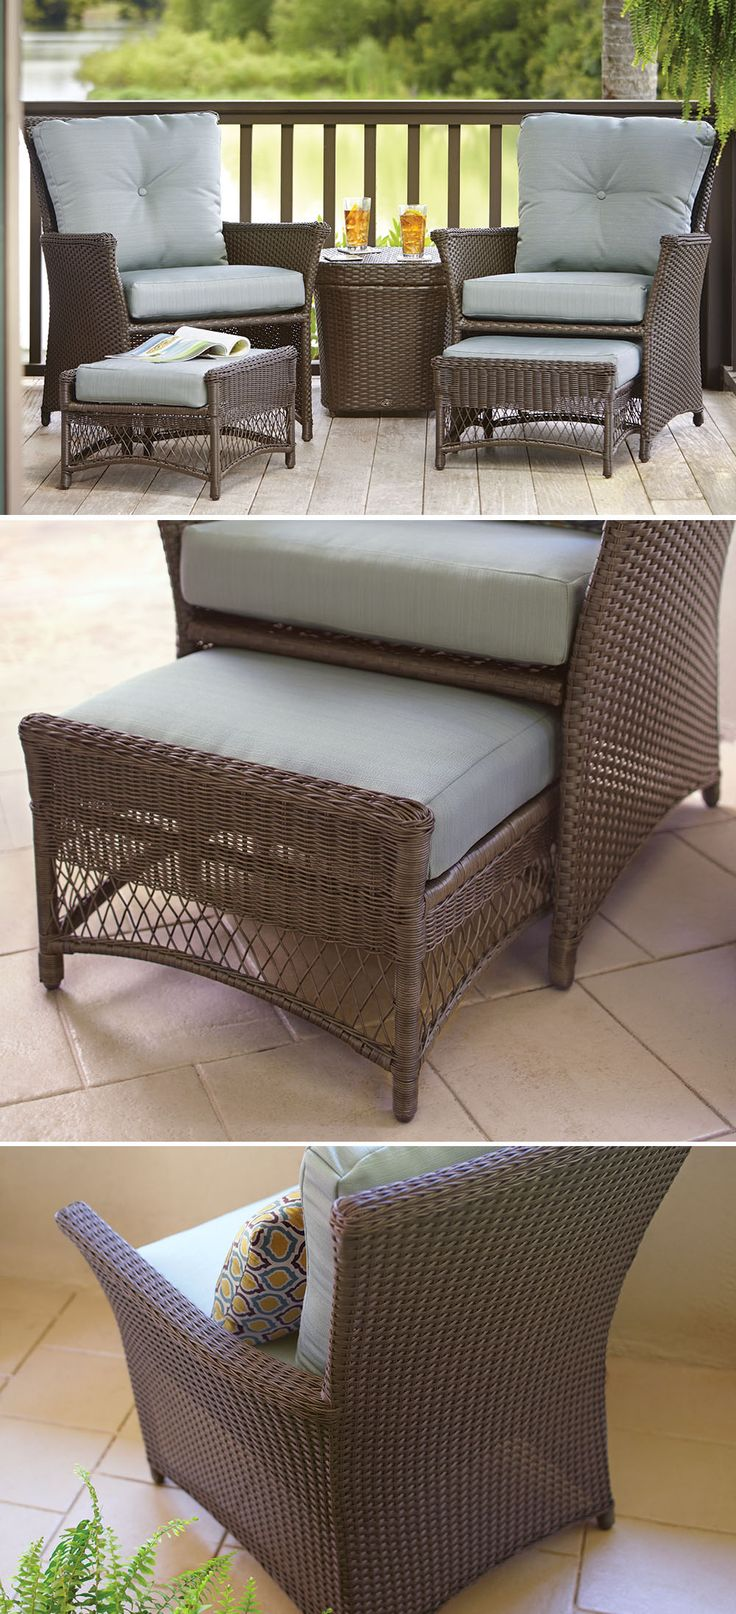 Superior Small Scale Outdoor Furniture Part - 5: Good Small Scale Outdoor Furniture Part - 10: Small Scale Outdoor Furniture